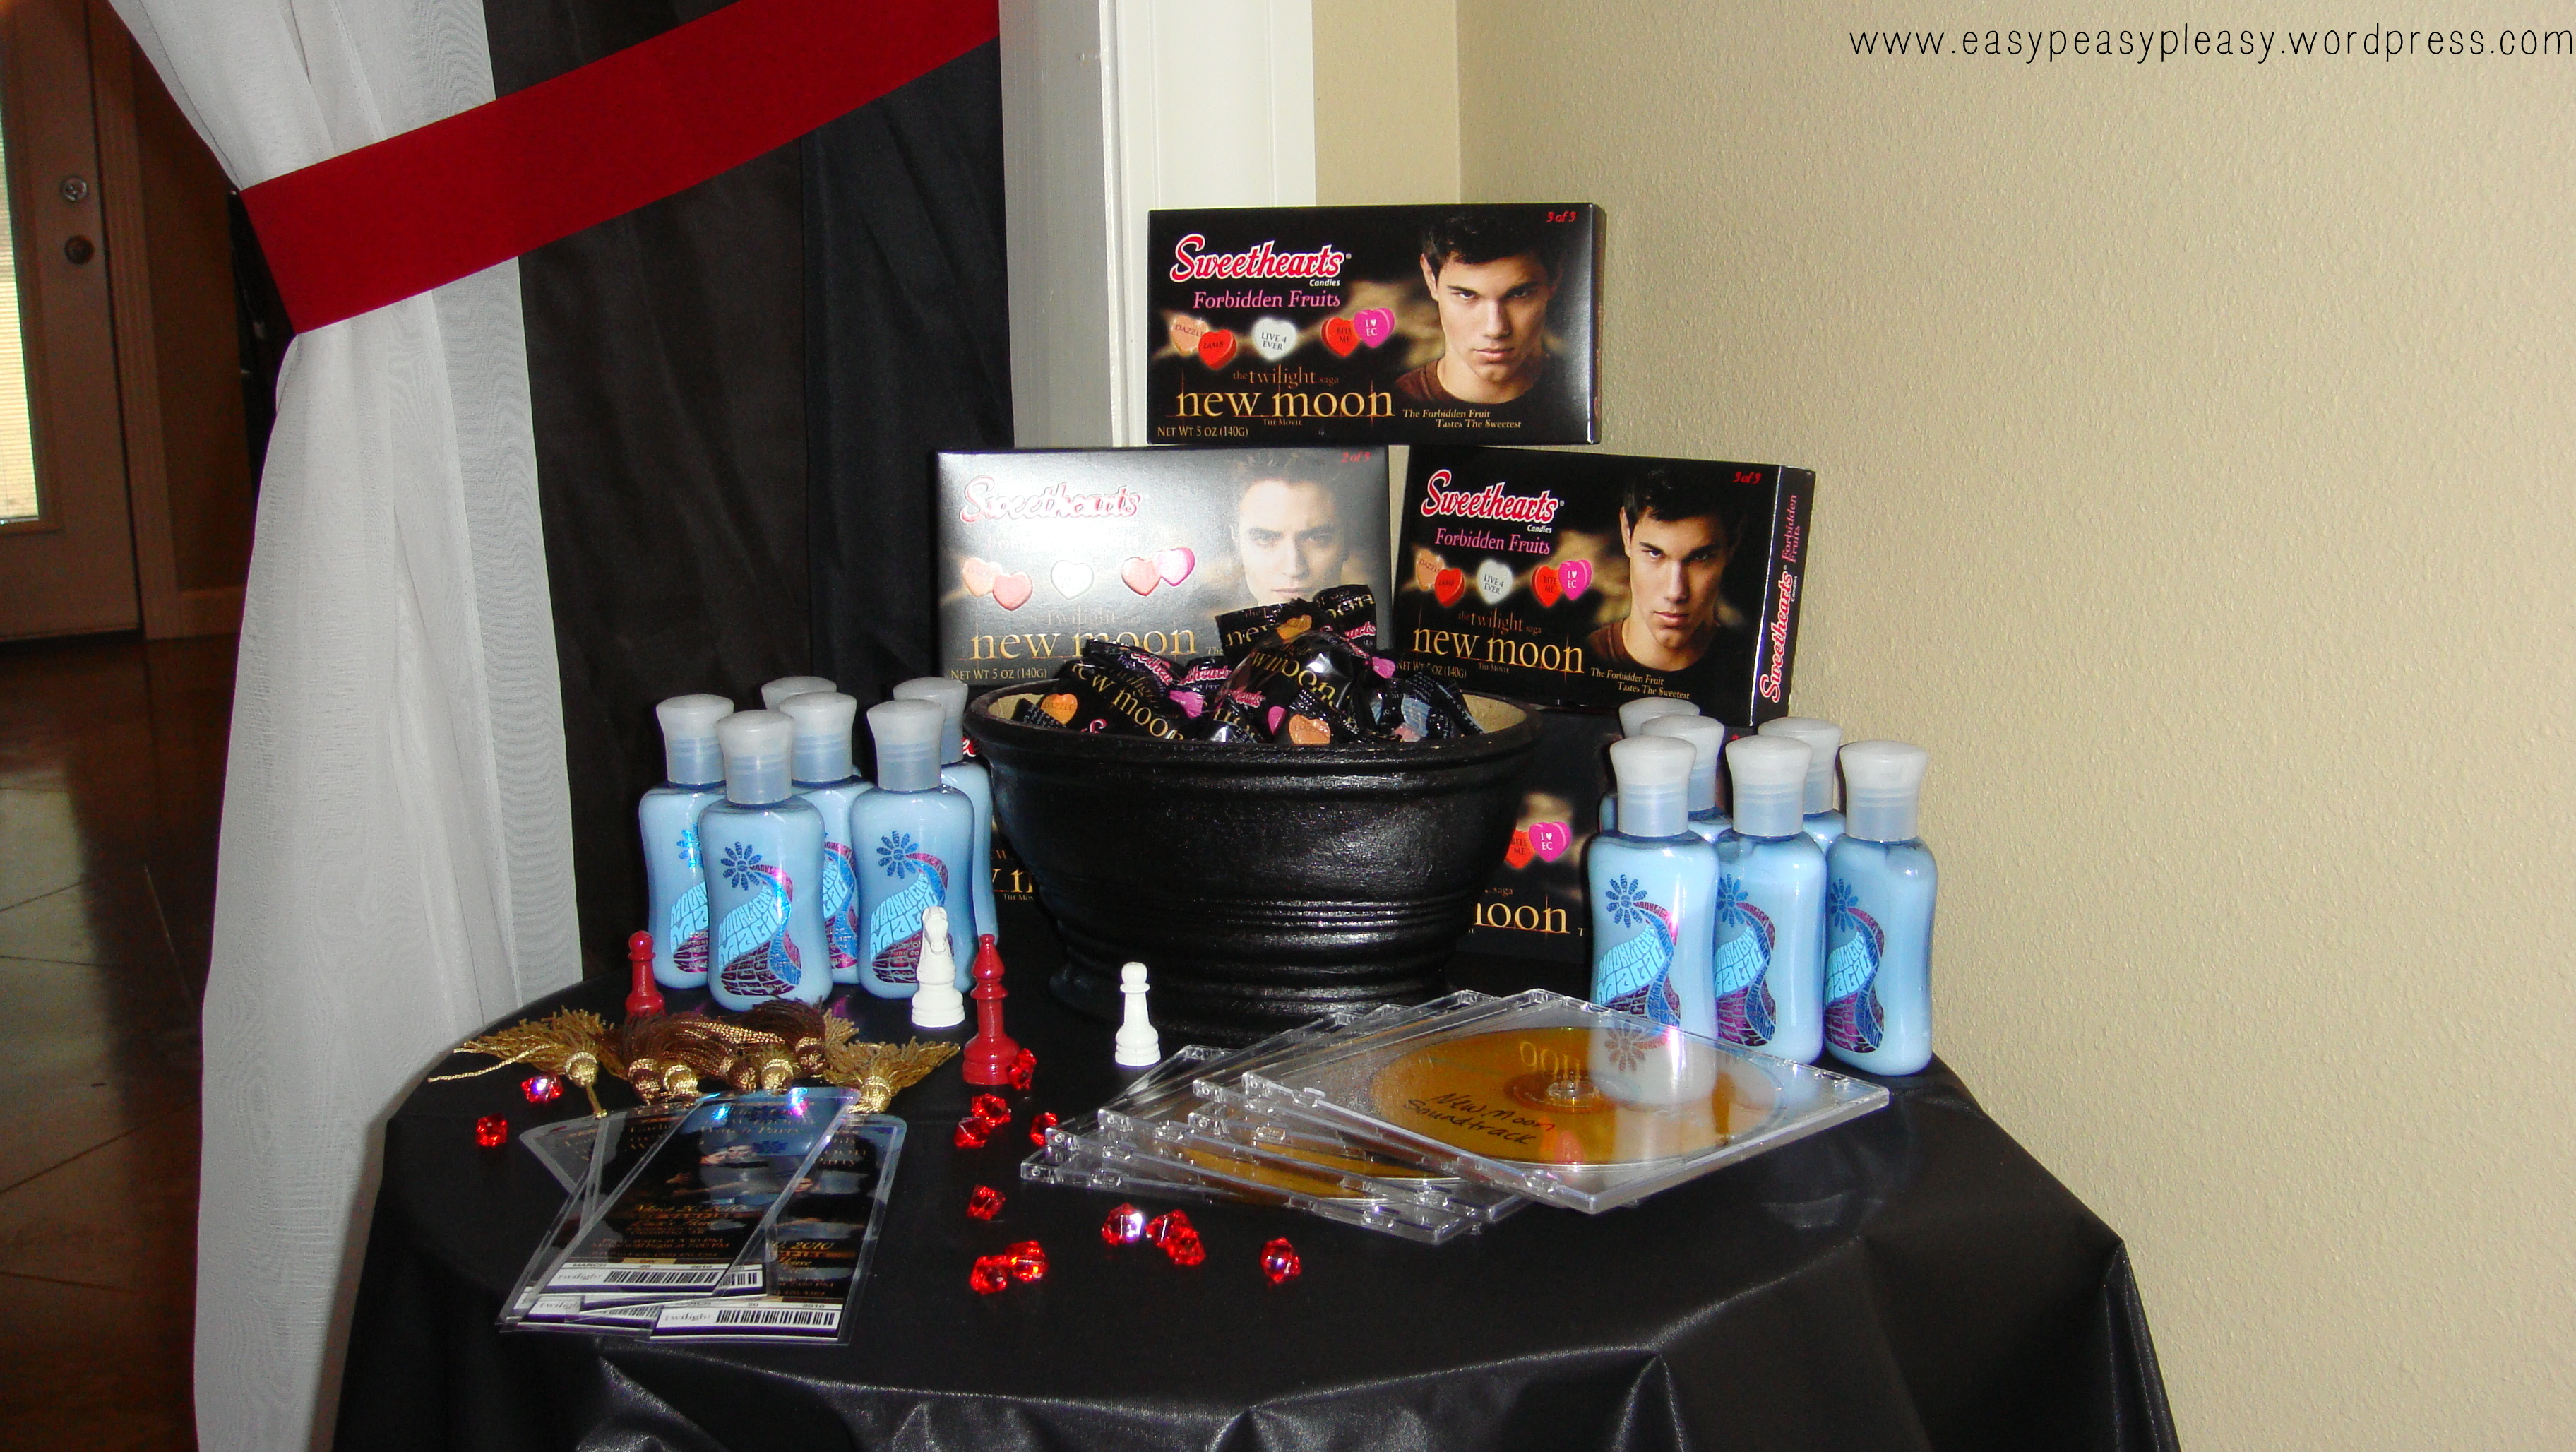 Twilight New Moon Party Favors #tbt